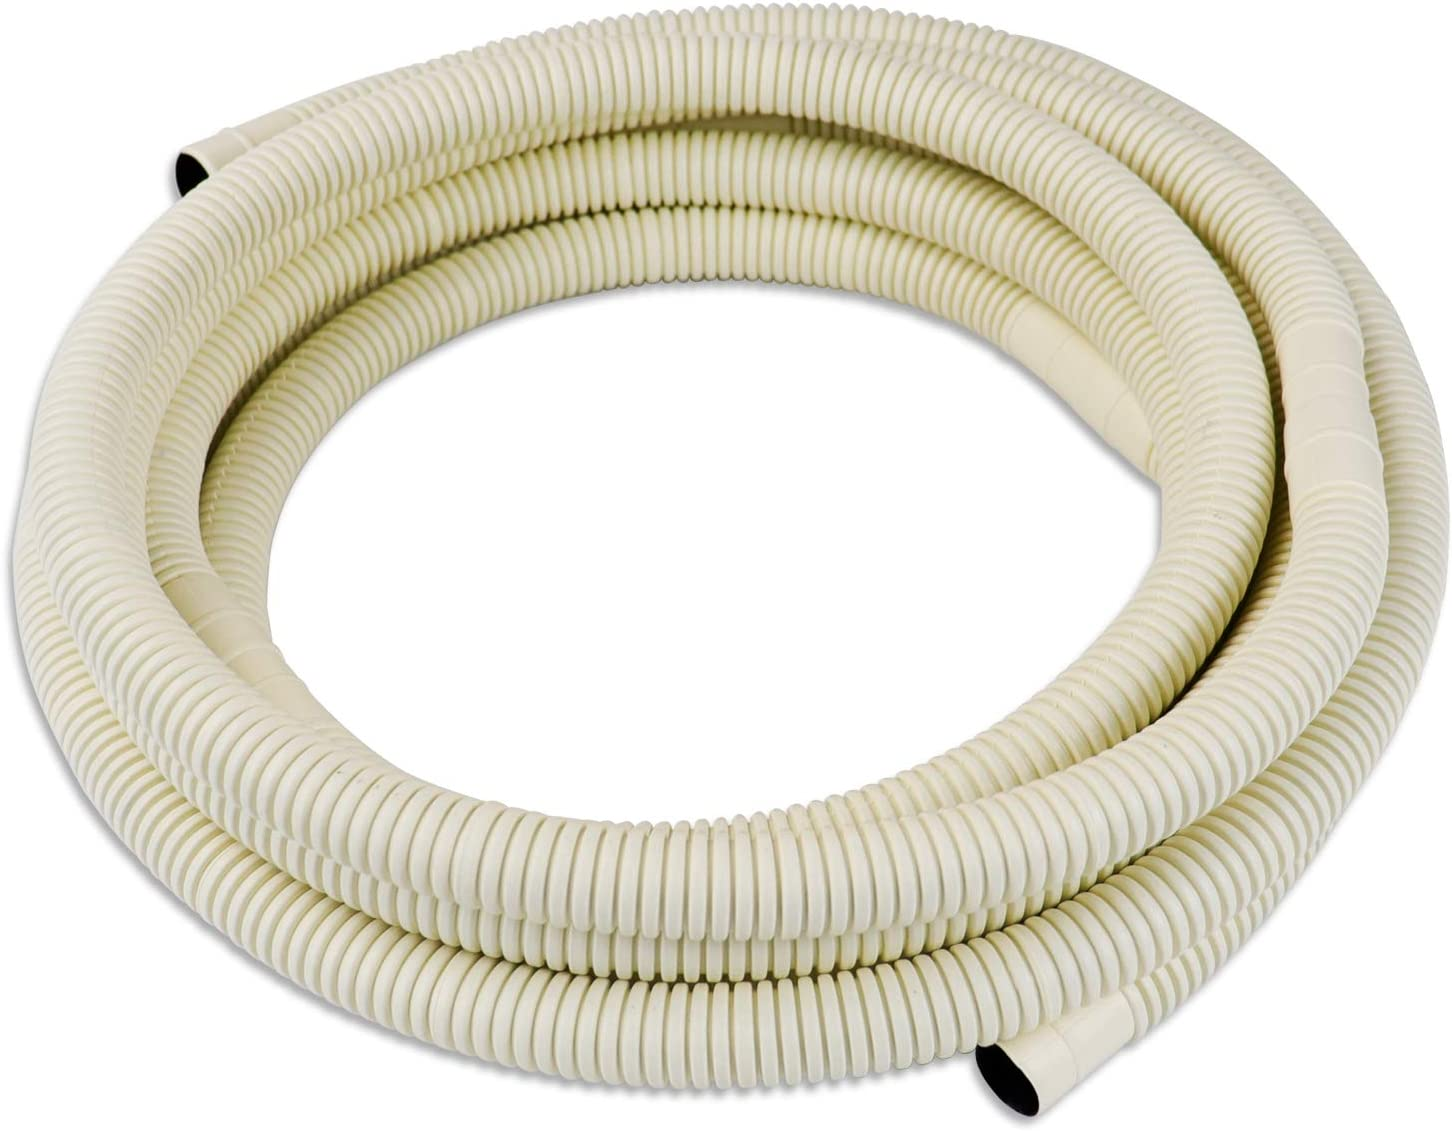 Daisypower Air Conditioner Drain Hose Pipe,20ft for Mini-Split Ductless AC, Heat Pump System,Cooling Only